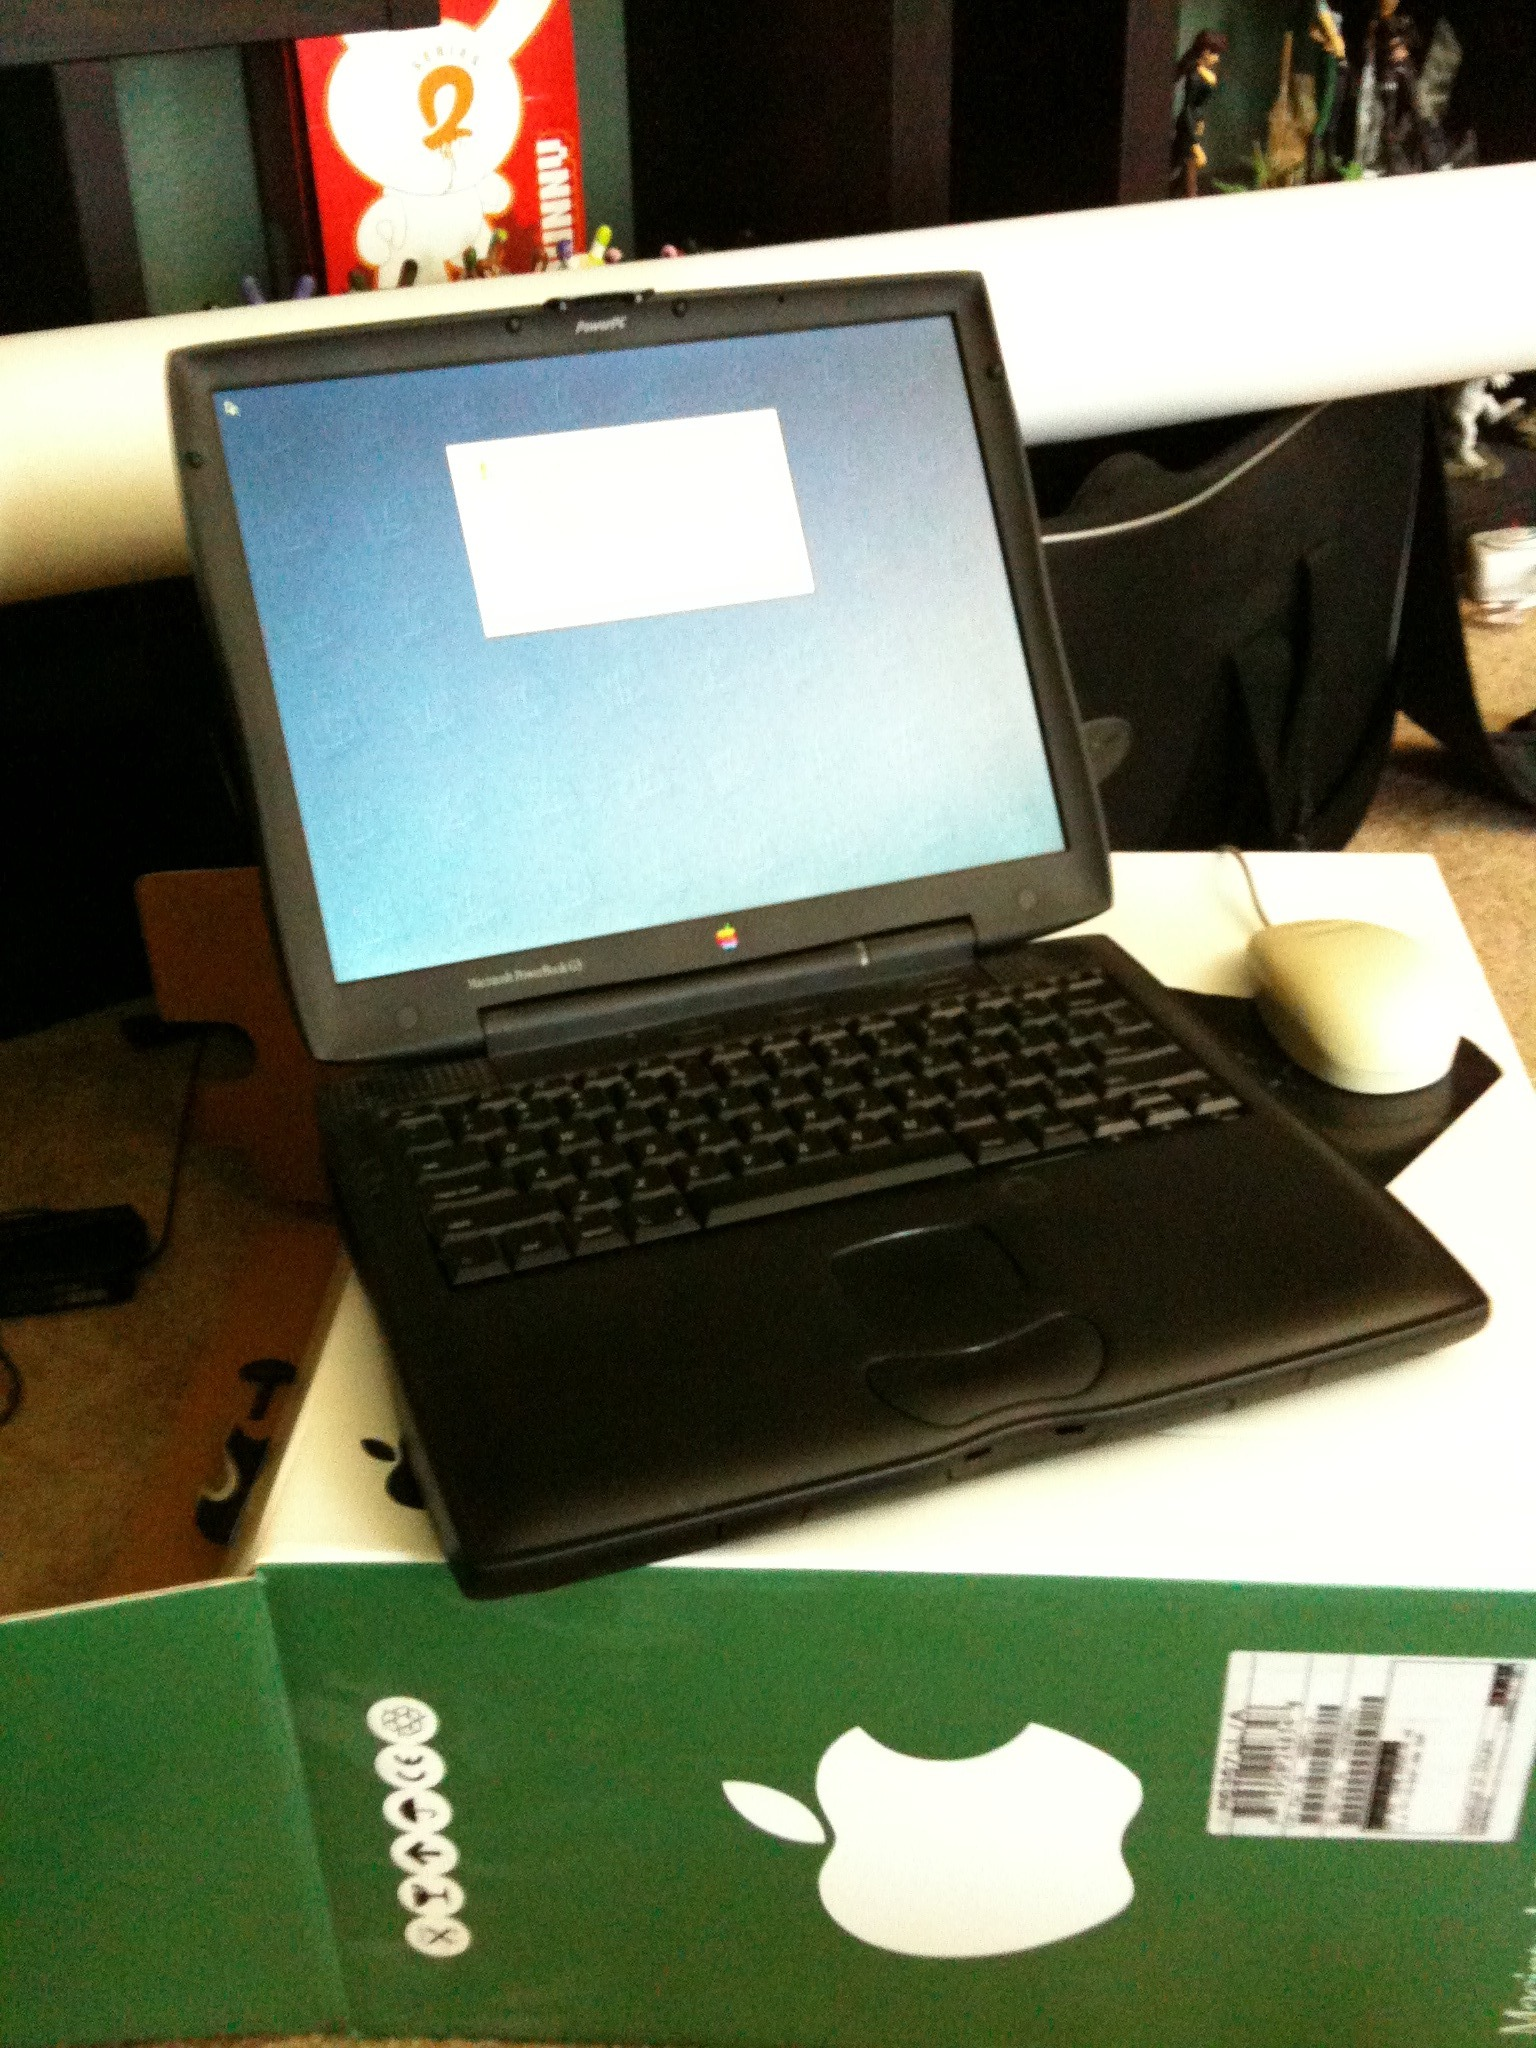 Wiping out an old school PowerBook to give to charity.